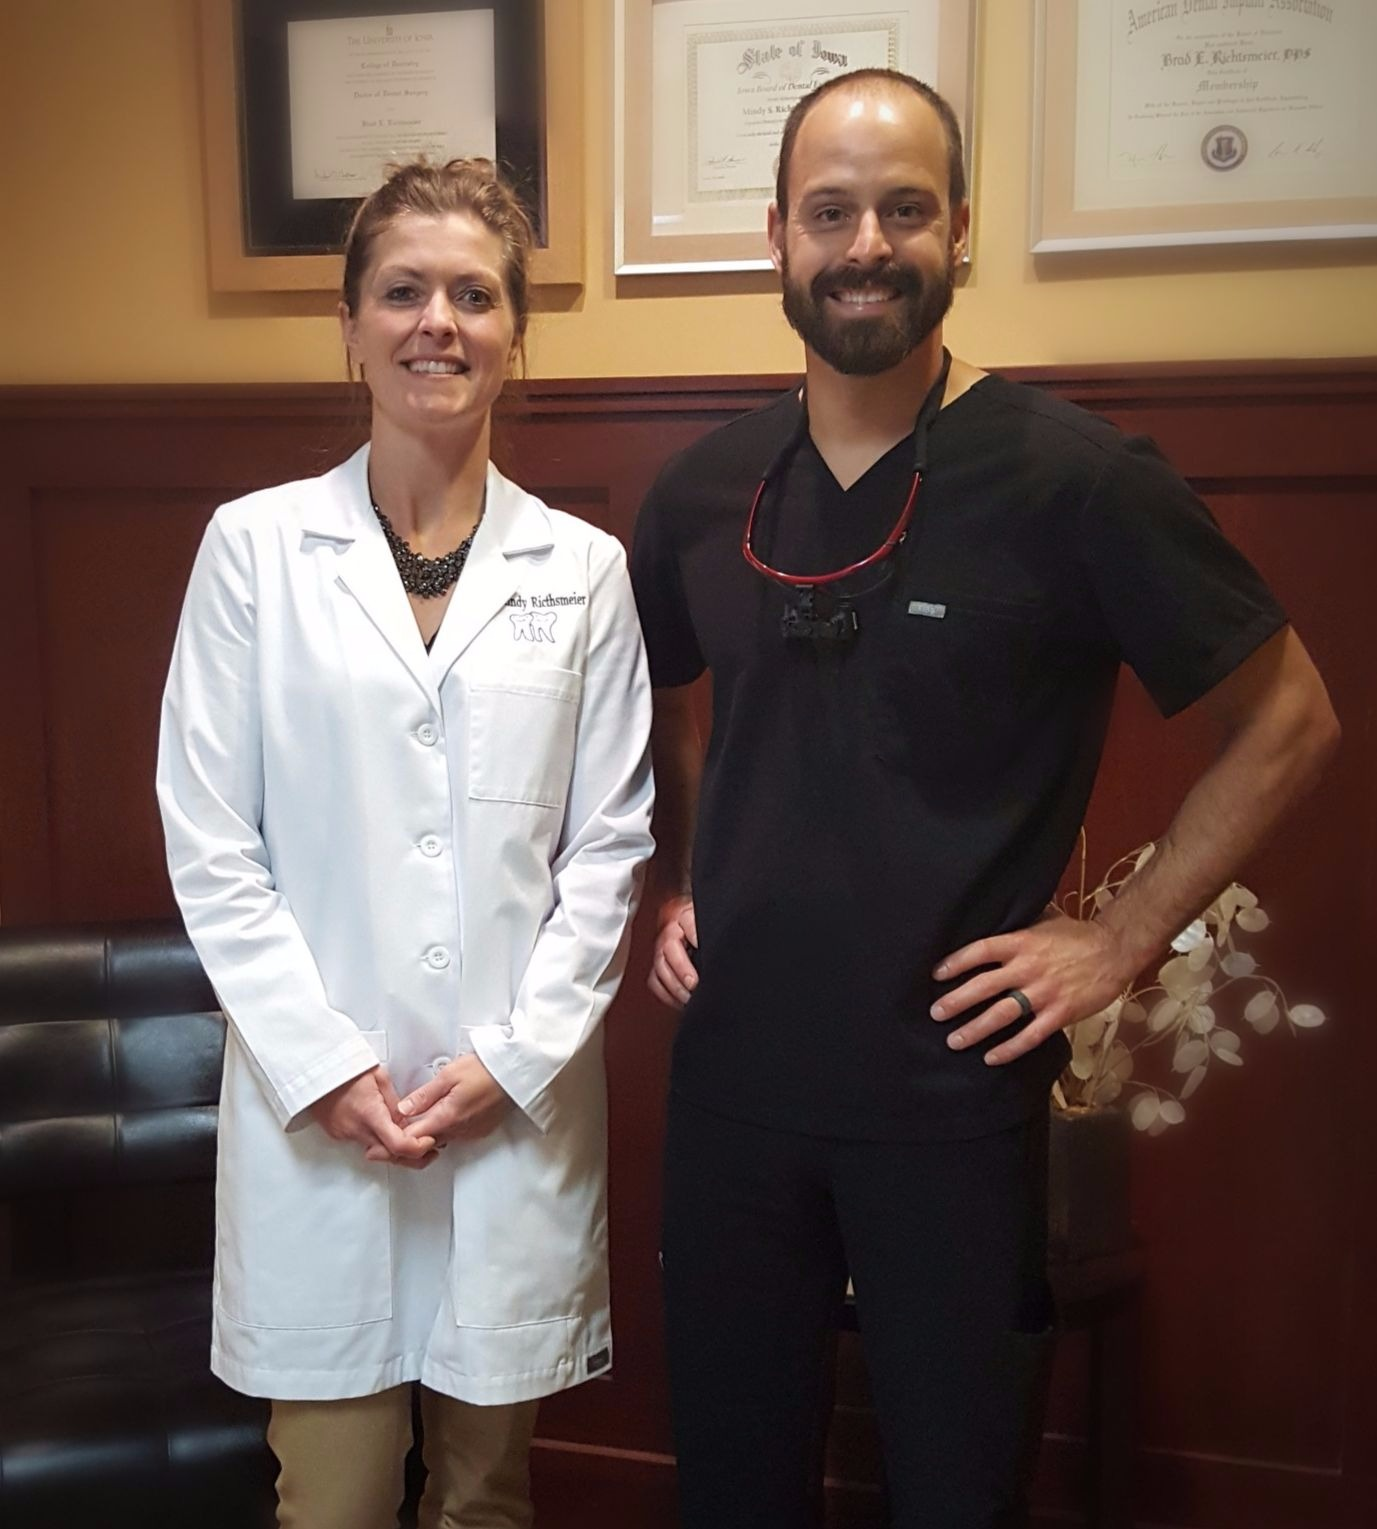 Dr. Mindy Richtsmeier and Dr. Brad Richtsmeier